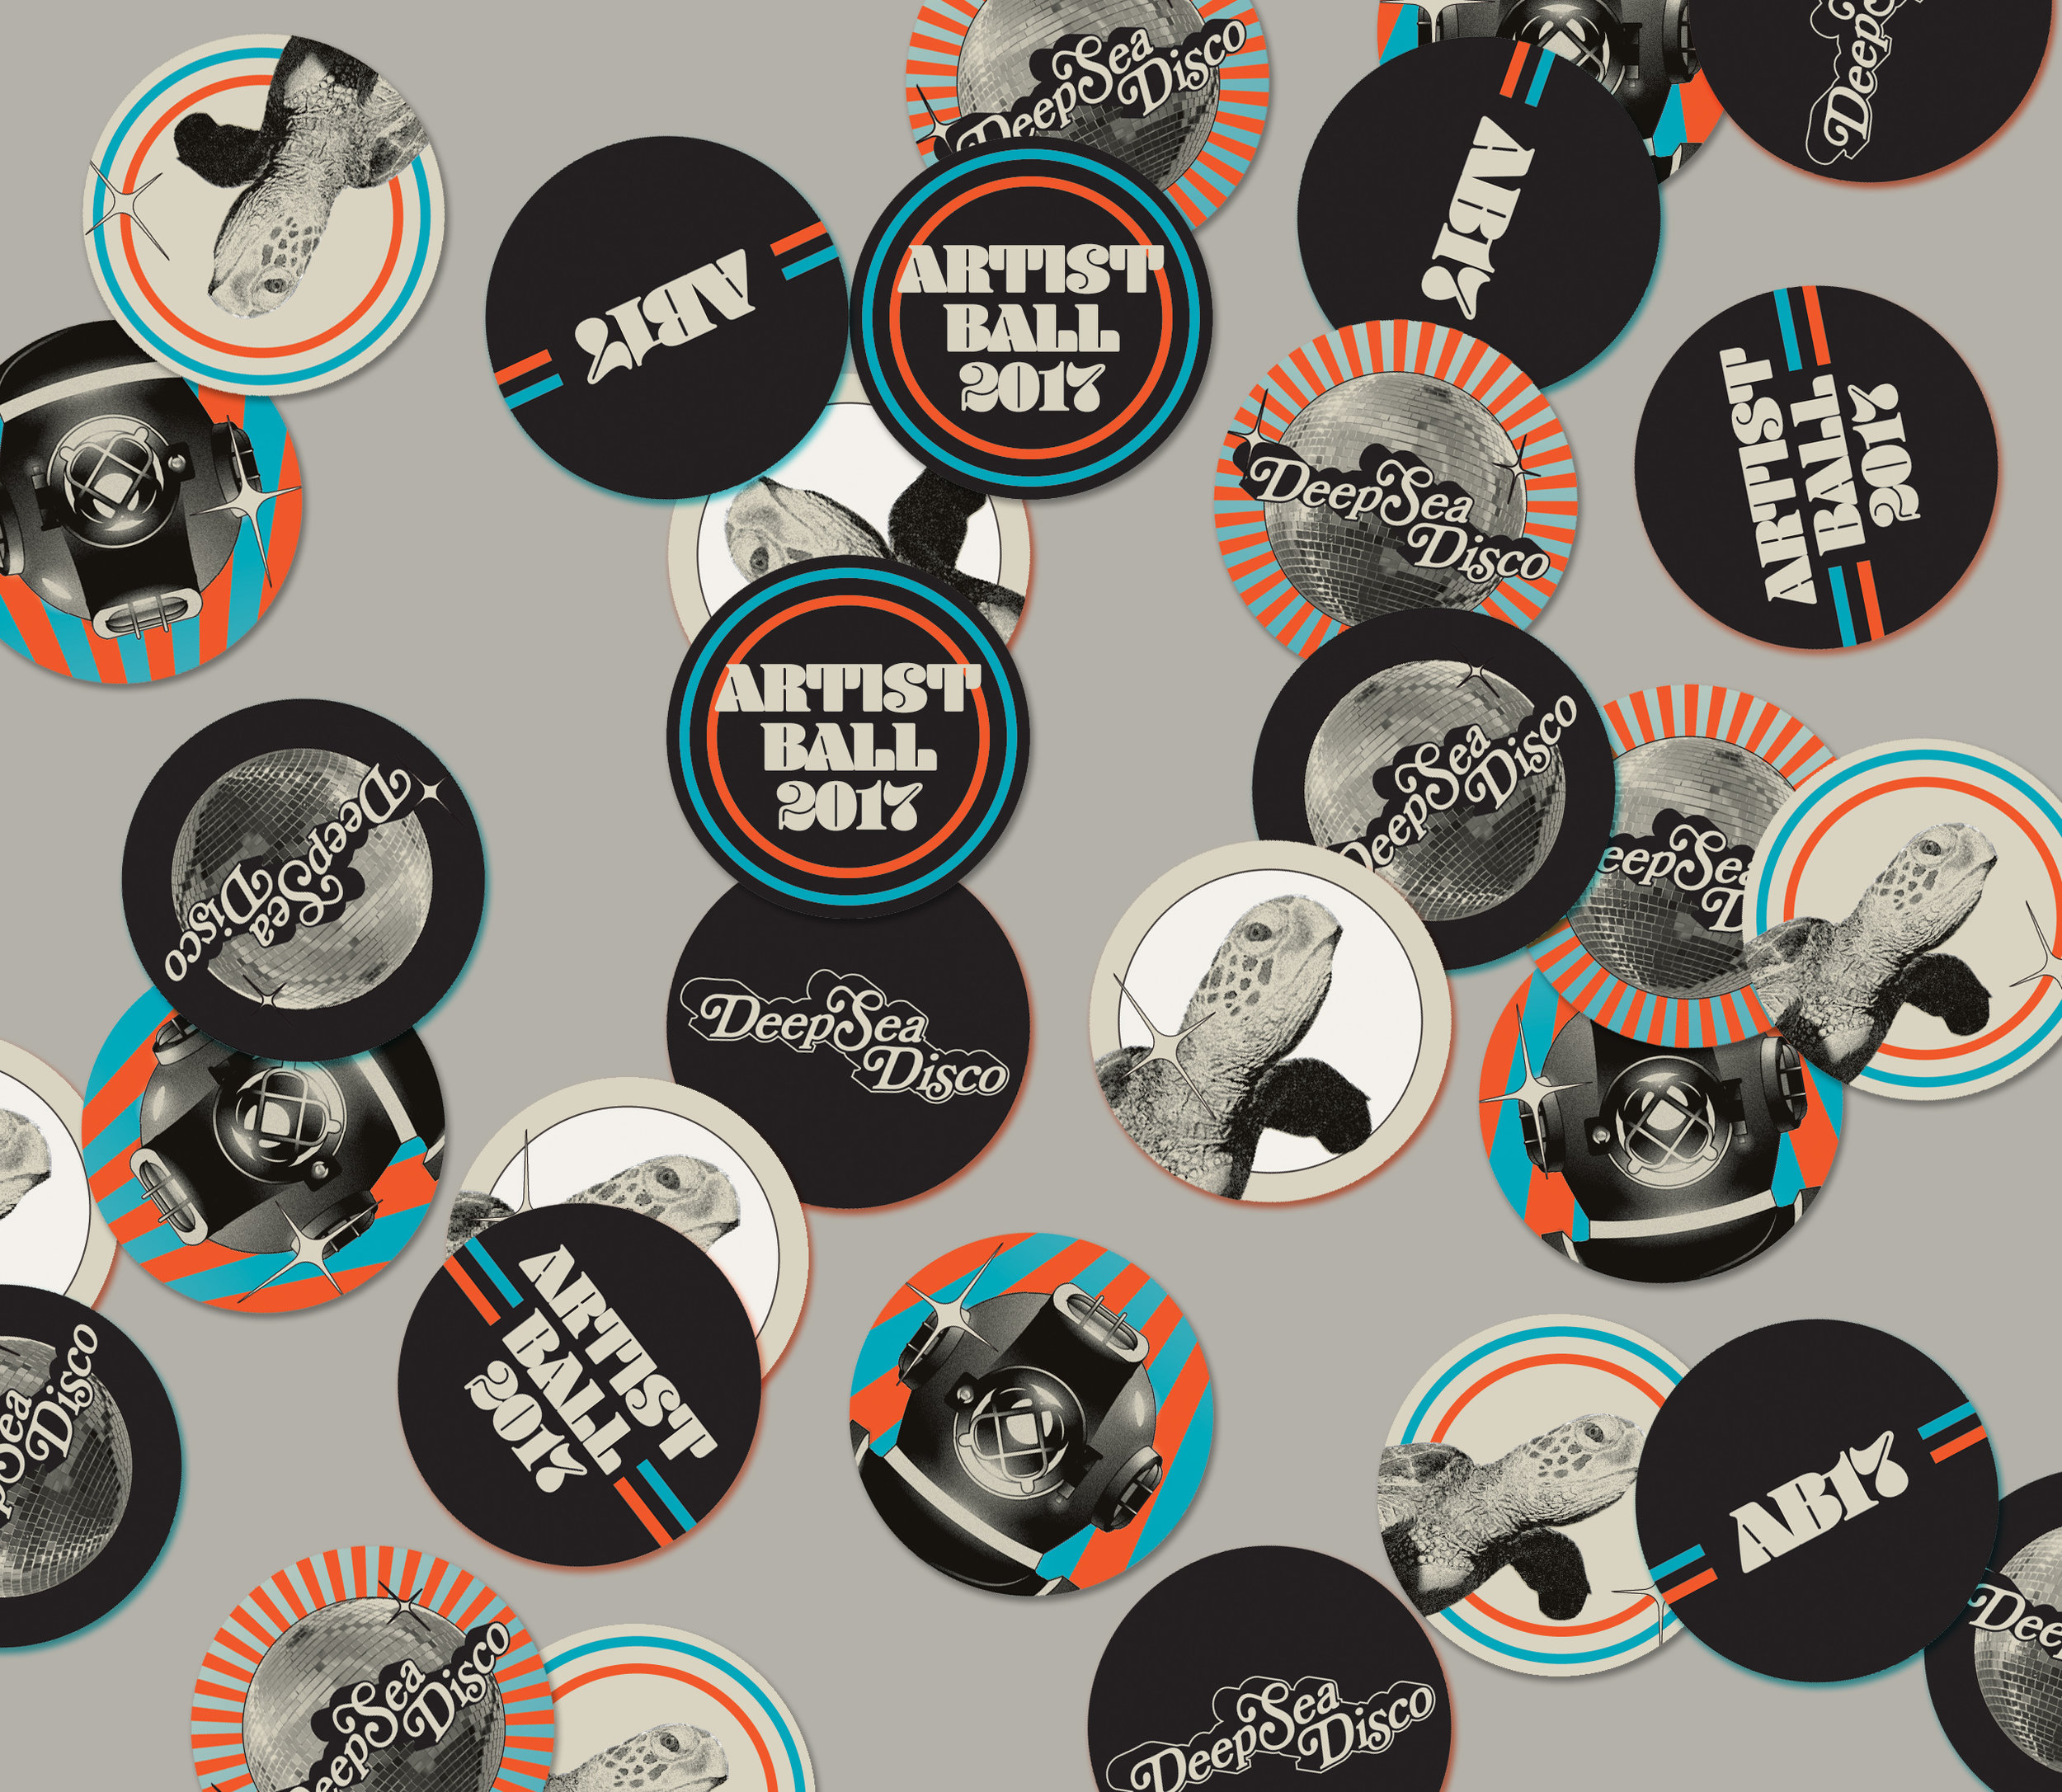 Stickers designed by Jacob Poindexter